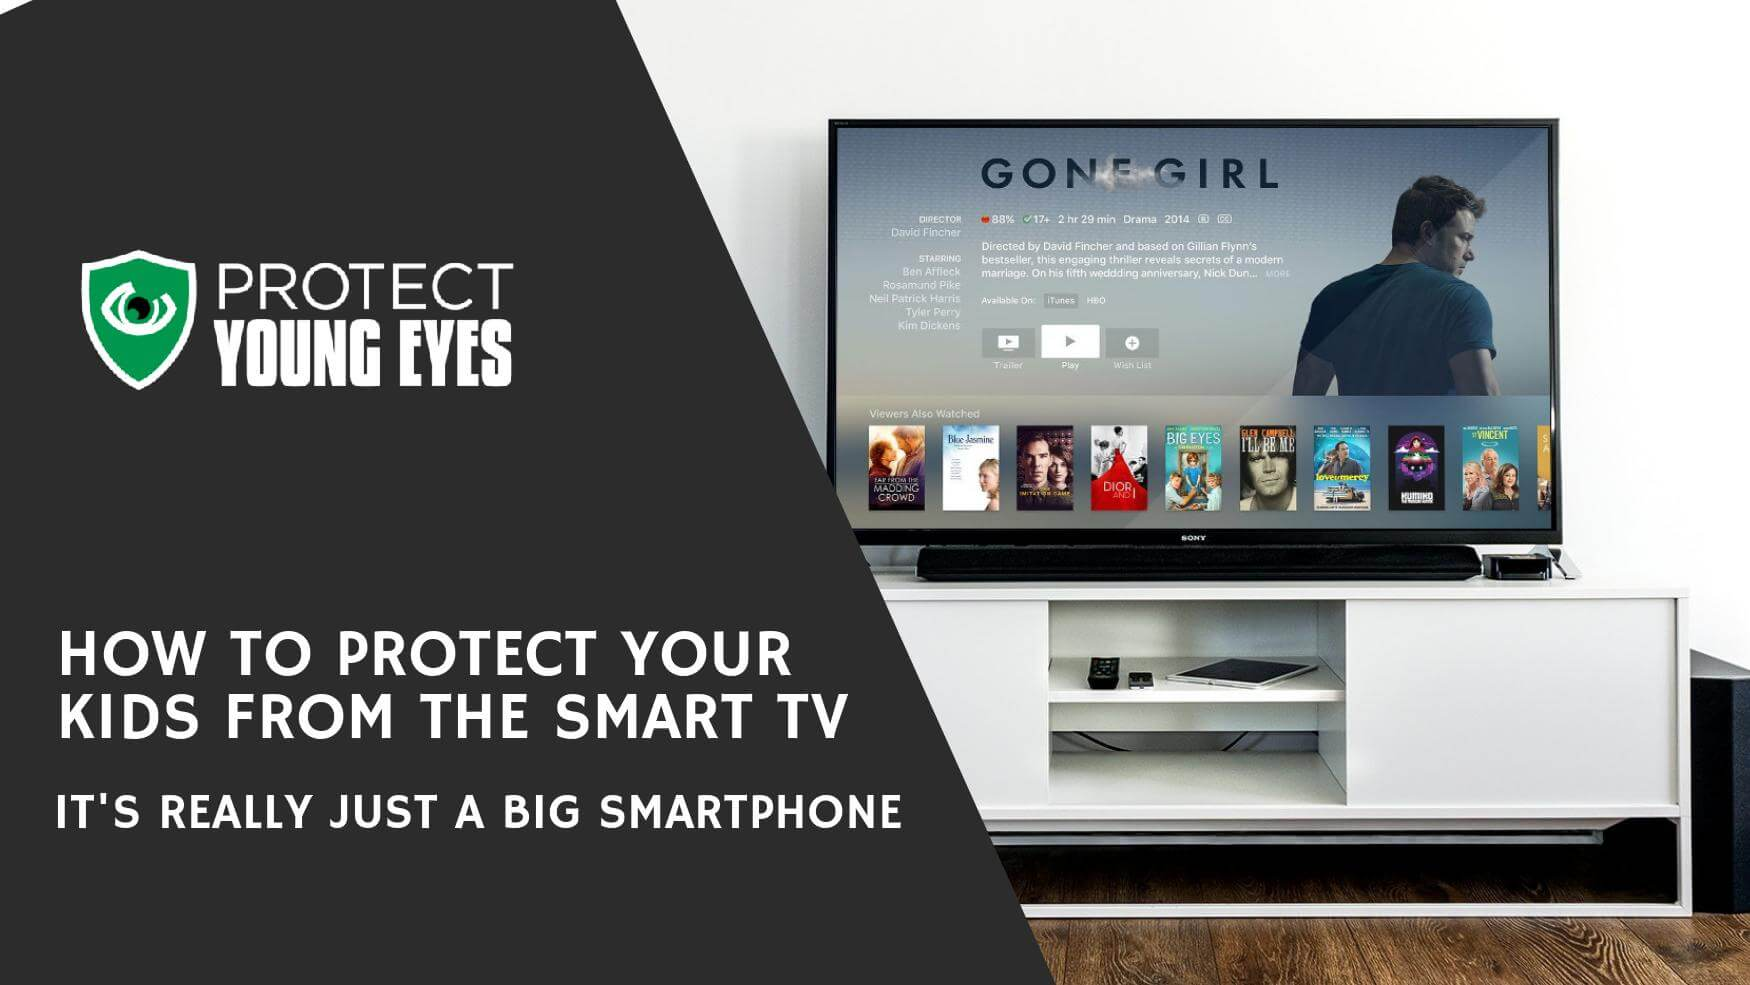 How to Protect Kids from the Smart TV